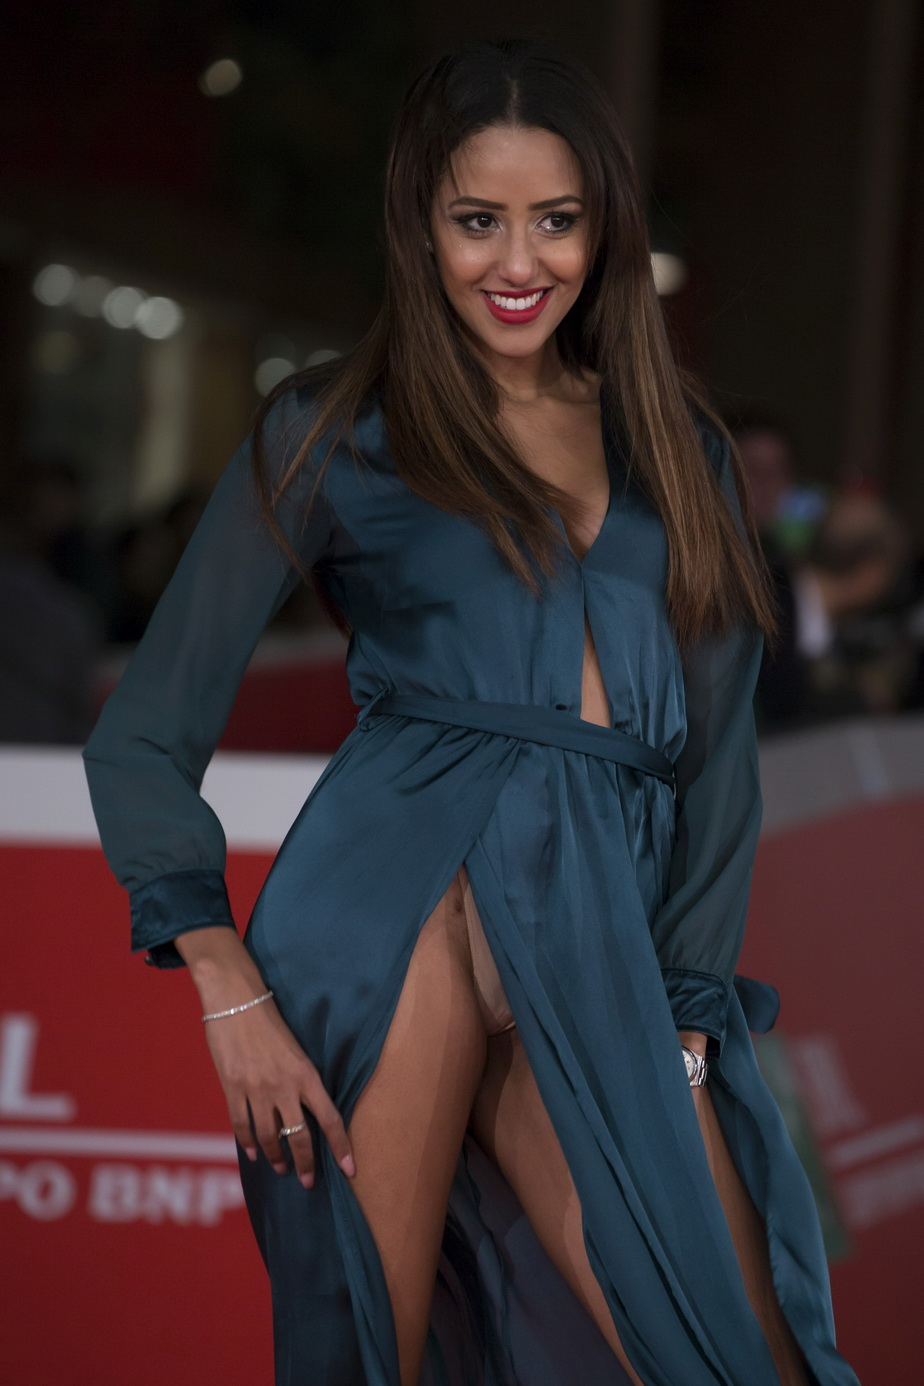 Actress Zaina Dridi poses for pictures as she arrives at Carol premiere as part of the 10th Rome Film Festival in Rome, Italy, on October 22, 2015 Photo by Alessia Paradisi/ABACAPRESS.COM